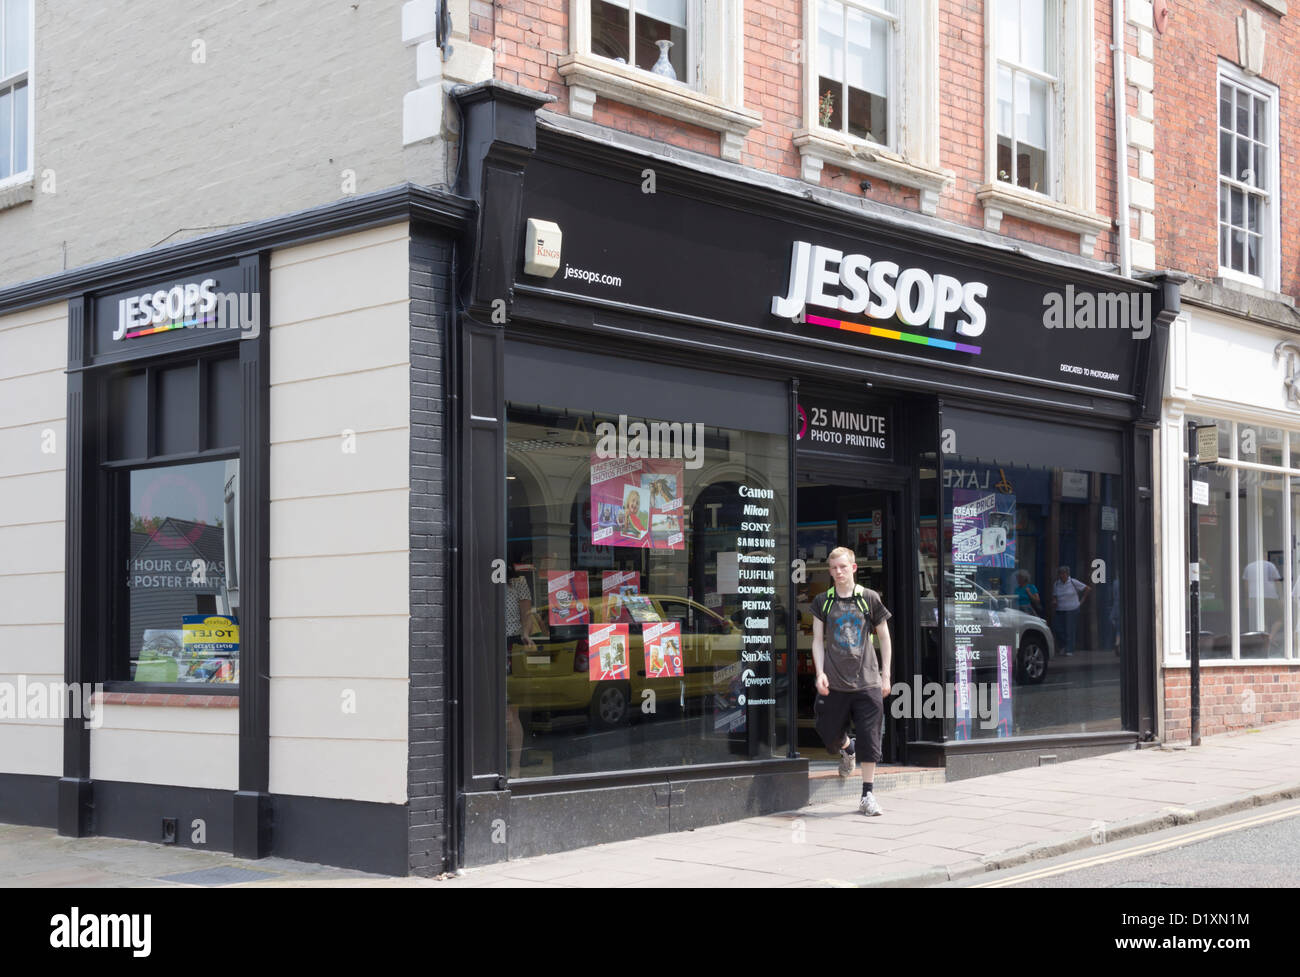 Jessops photographic equipment shop on Mardol, Shrewsbury. Jessops has a UK wide chain of over 200 photographic - Stock Image